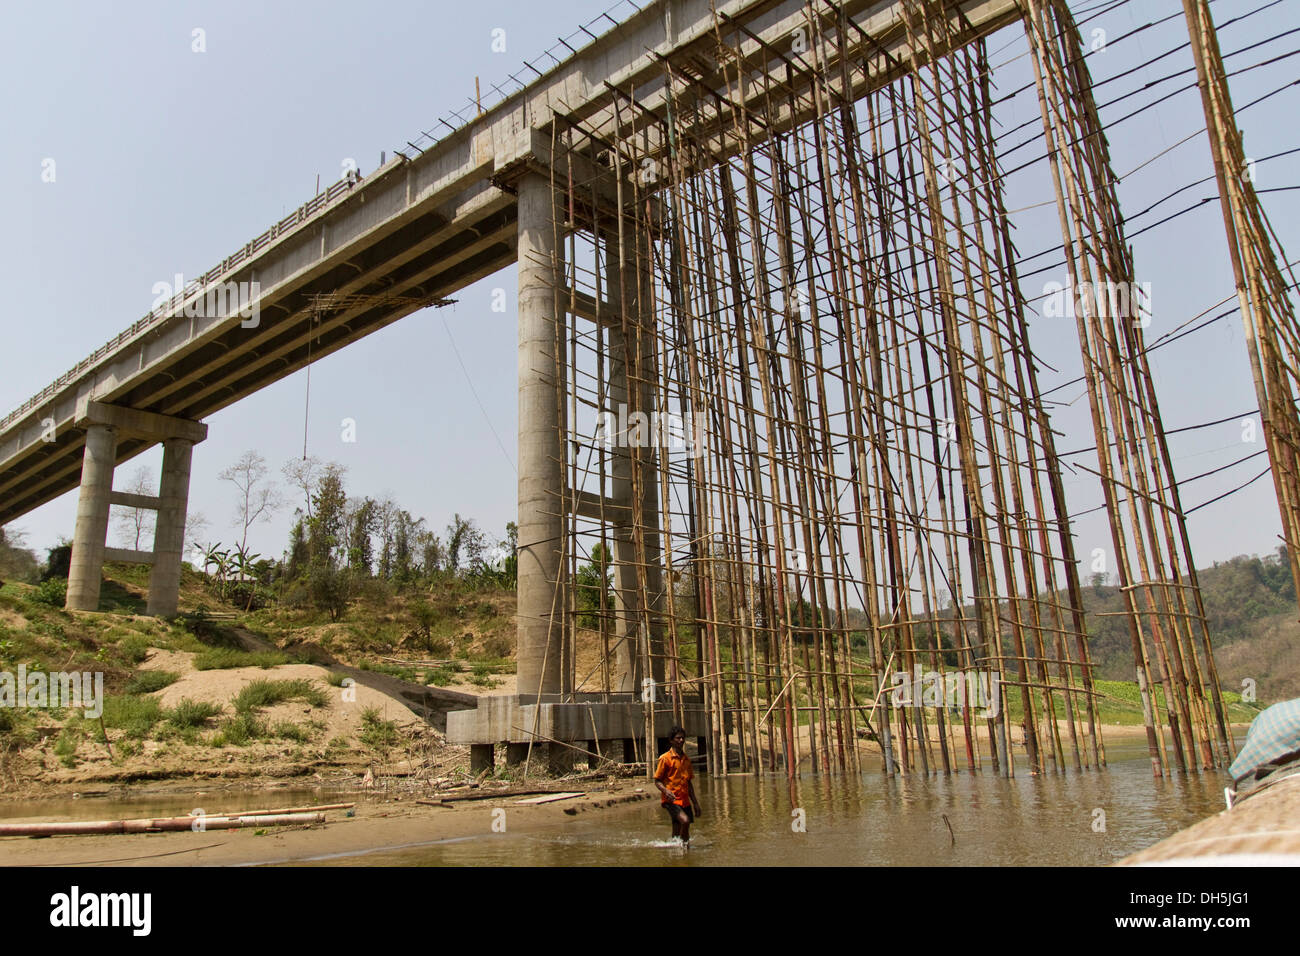 Construction Scaffolding Design : Scaffolding made of bamboo poles for the construction a